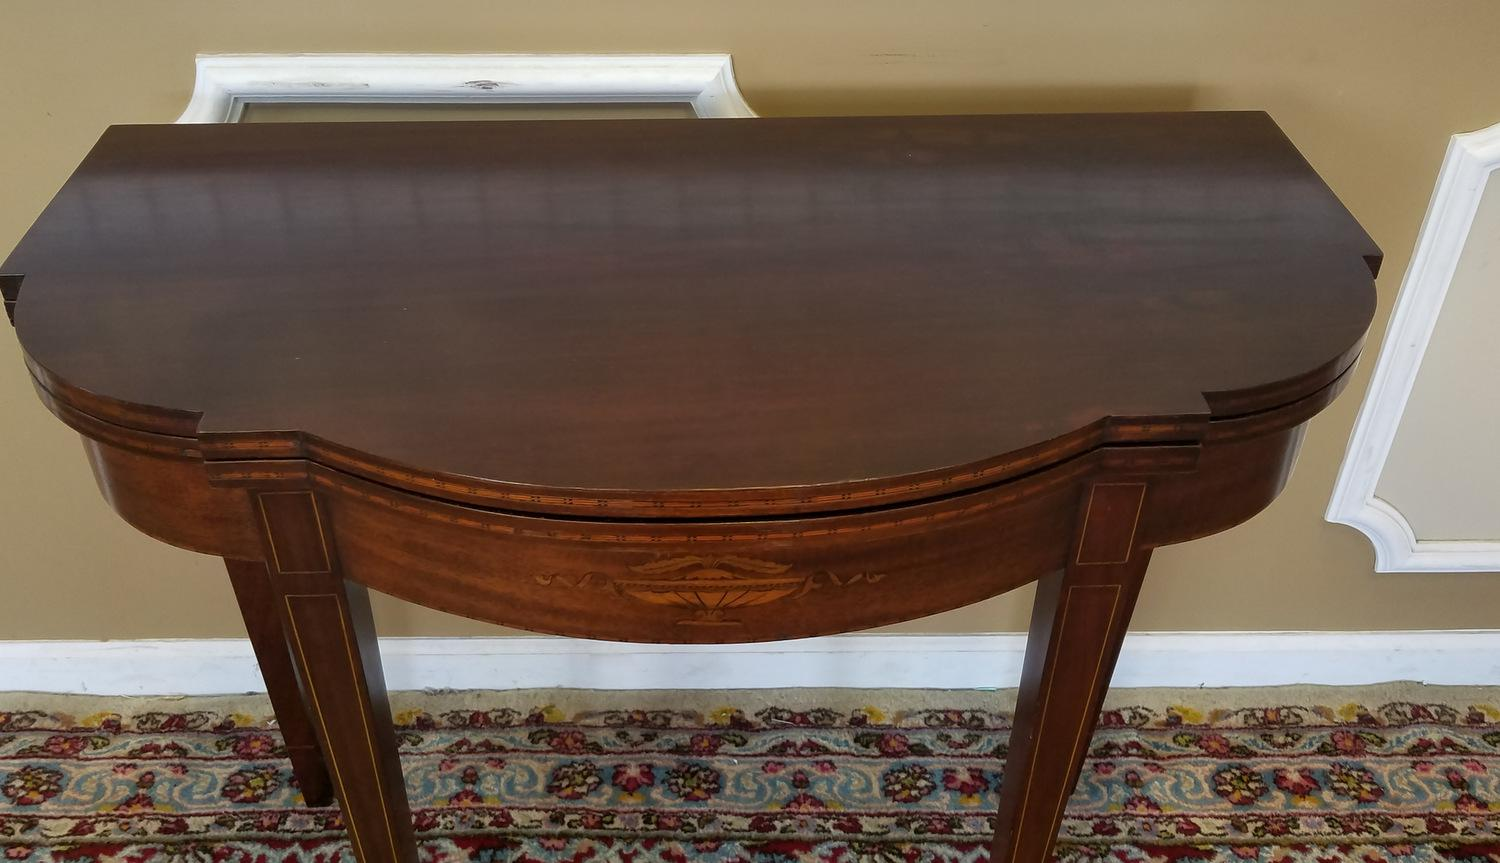 mahogany sheraton style paine furniture flip top console hallway table c1940s image 6 of 11